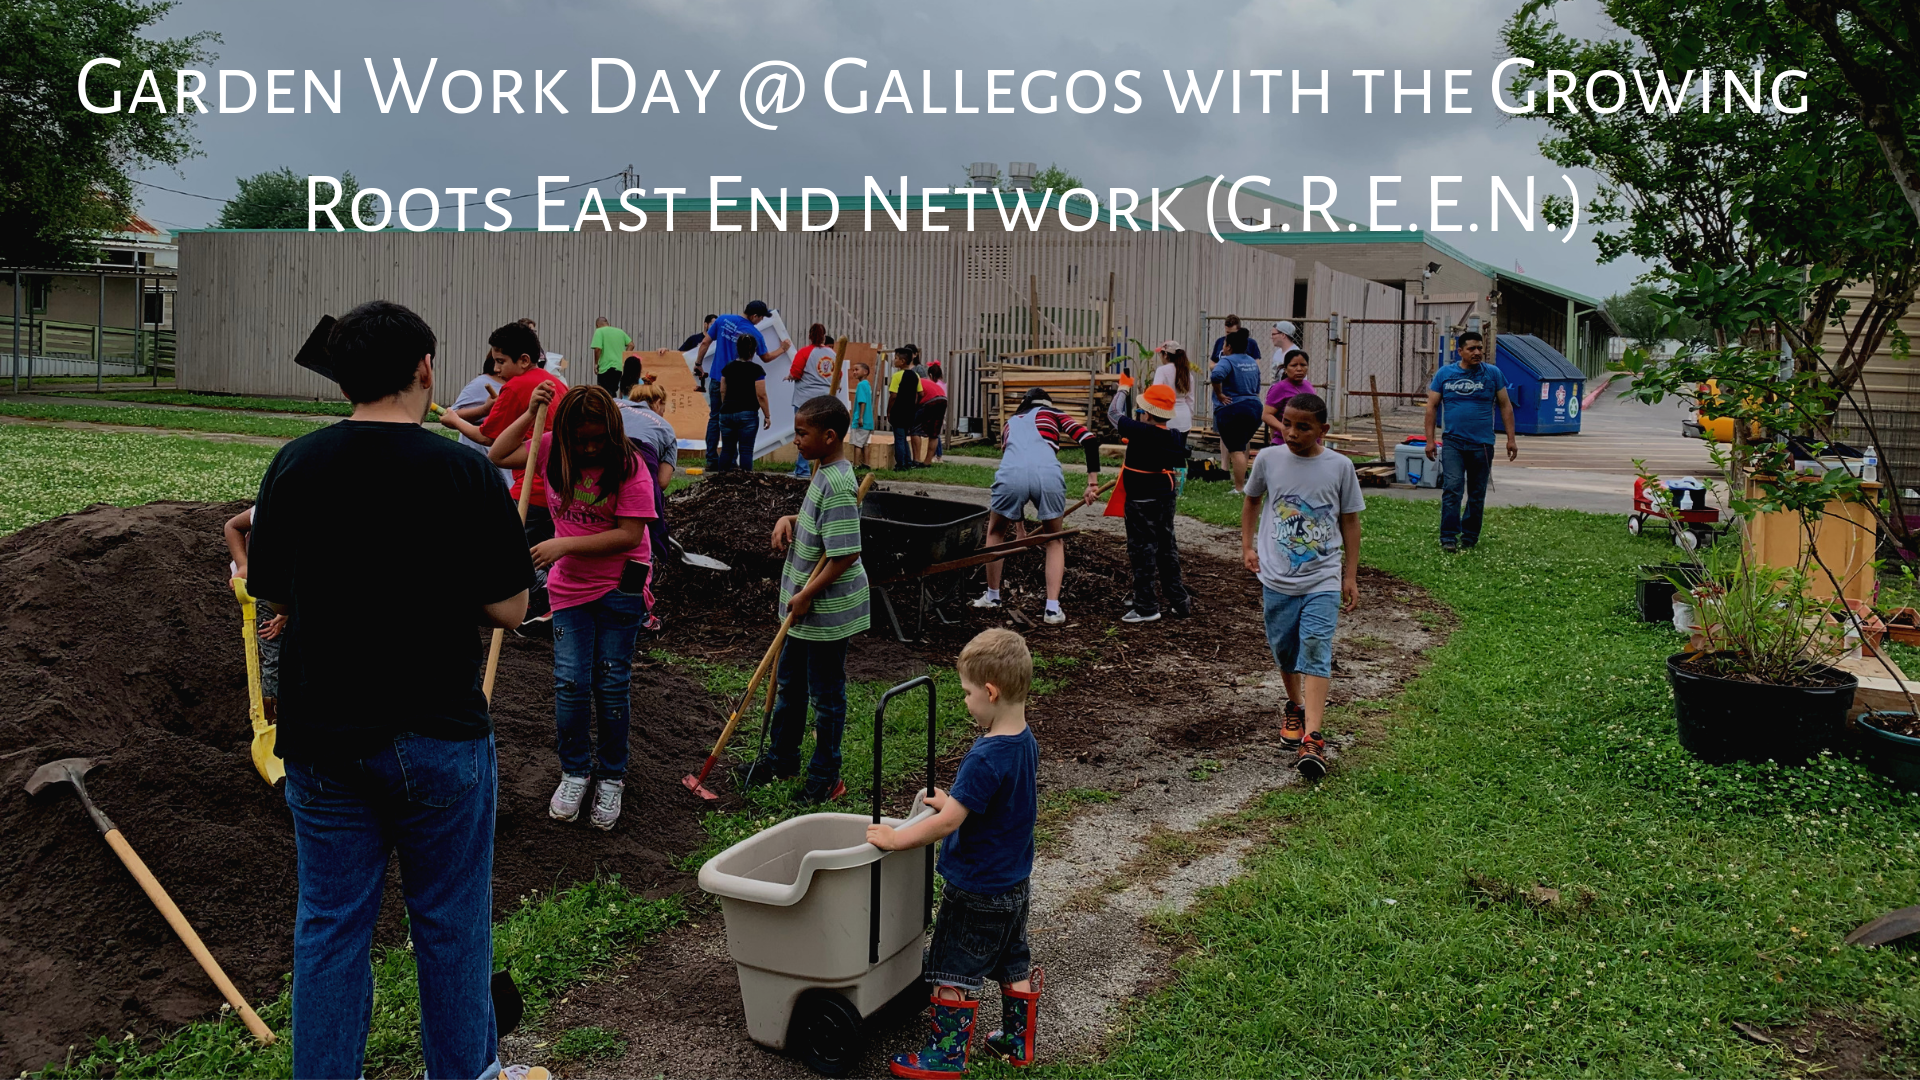 Garden Work Day @ Gallegos with the Growing Roots East End Network (G.R.E.E.N.).png